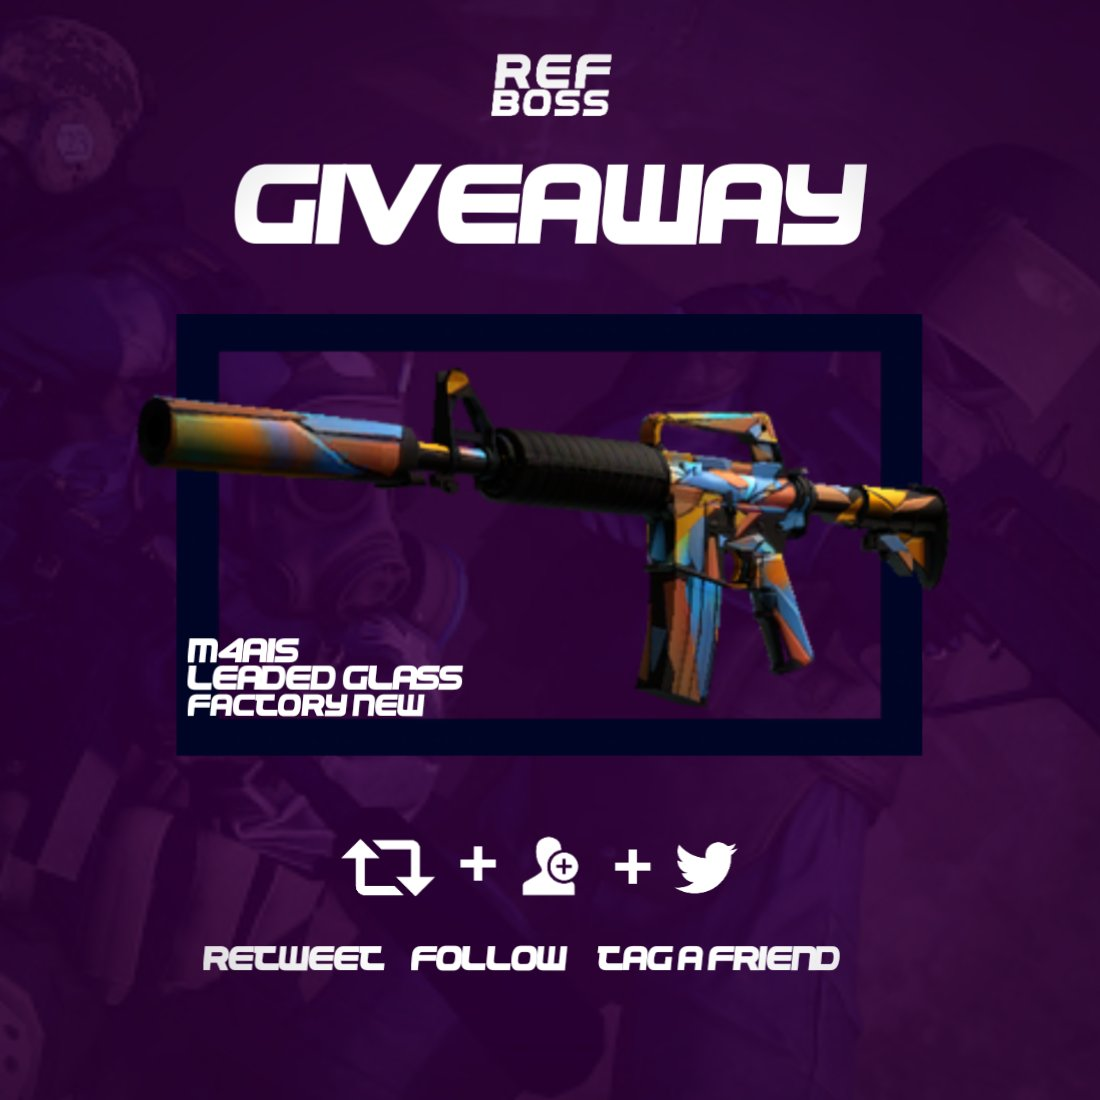 Replying to @Refboss1: 🎉FAST HOURLY GIVEAWAY!  Enter: Retweet and follow.